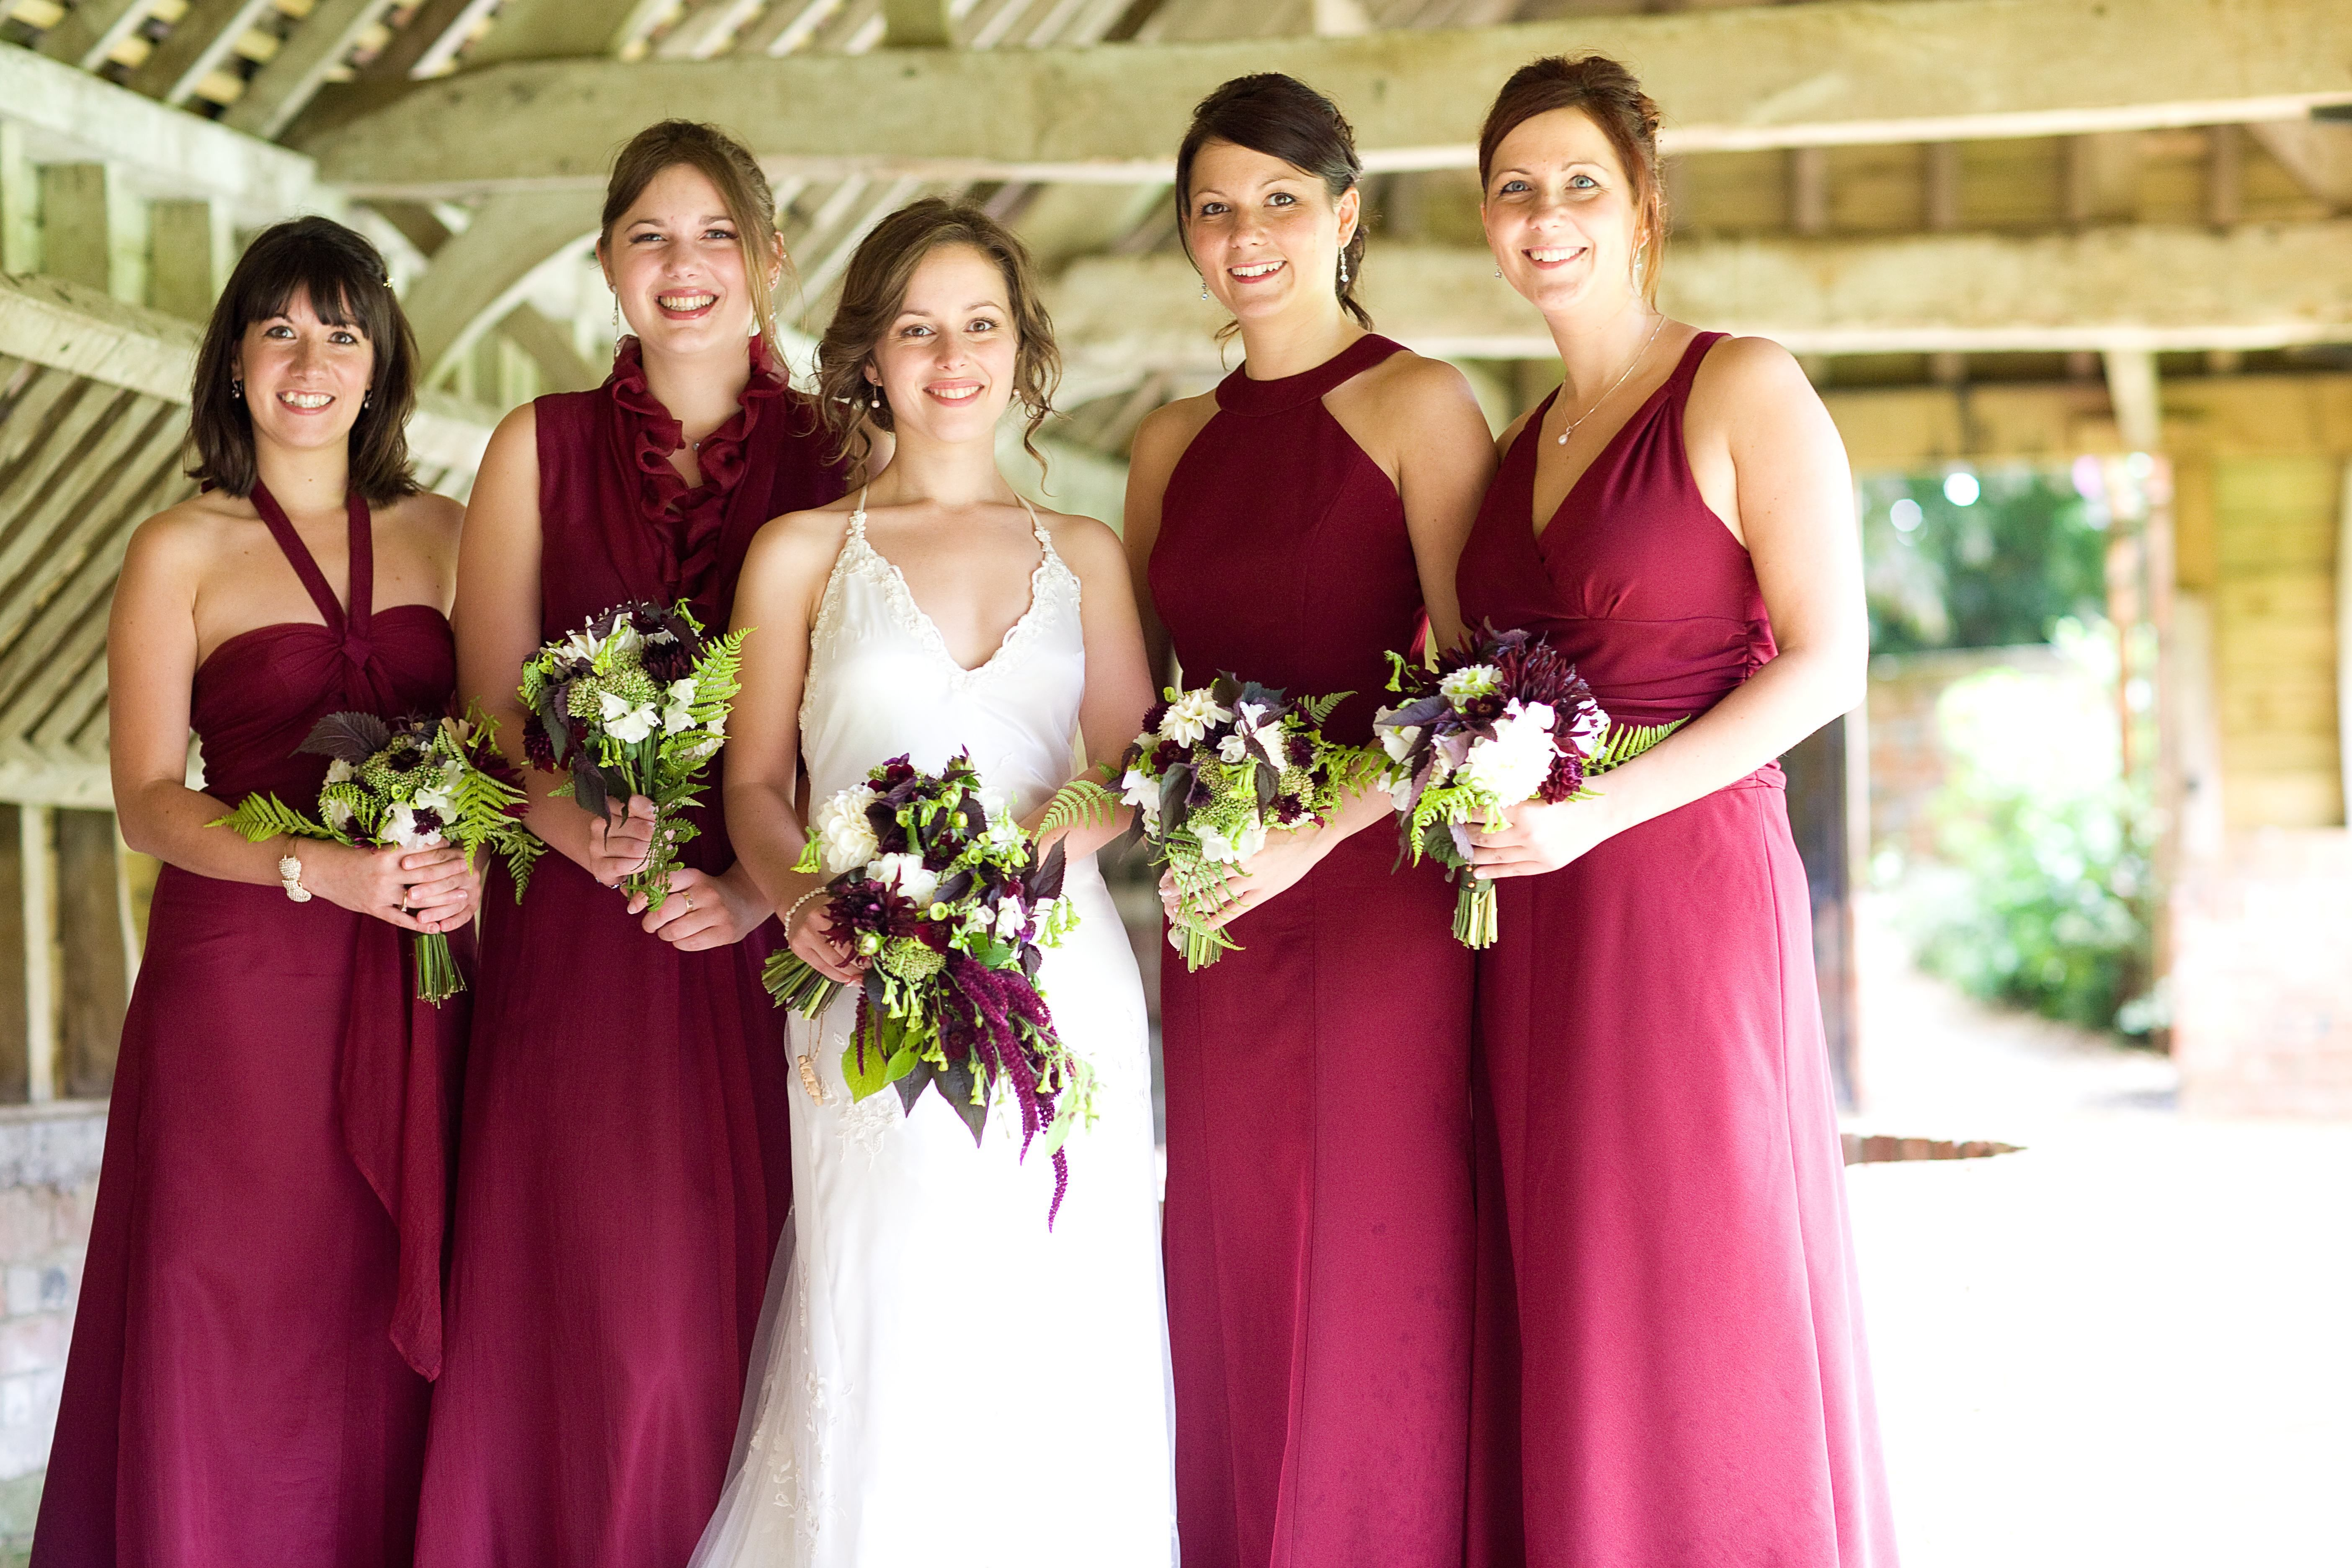 Chocolate and cosmos bouquets with burgundy bridesmaid dresses chocolate and cosmos bouquets with burgundy bridesmaid dresses lovely fall wedding idea ombrellifo Image collections